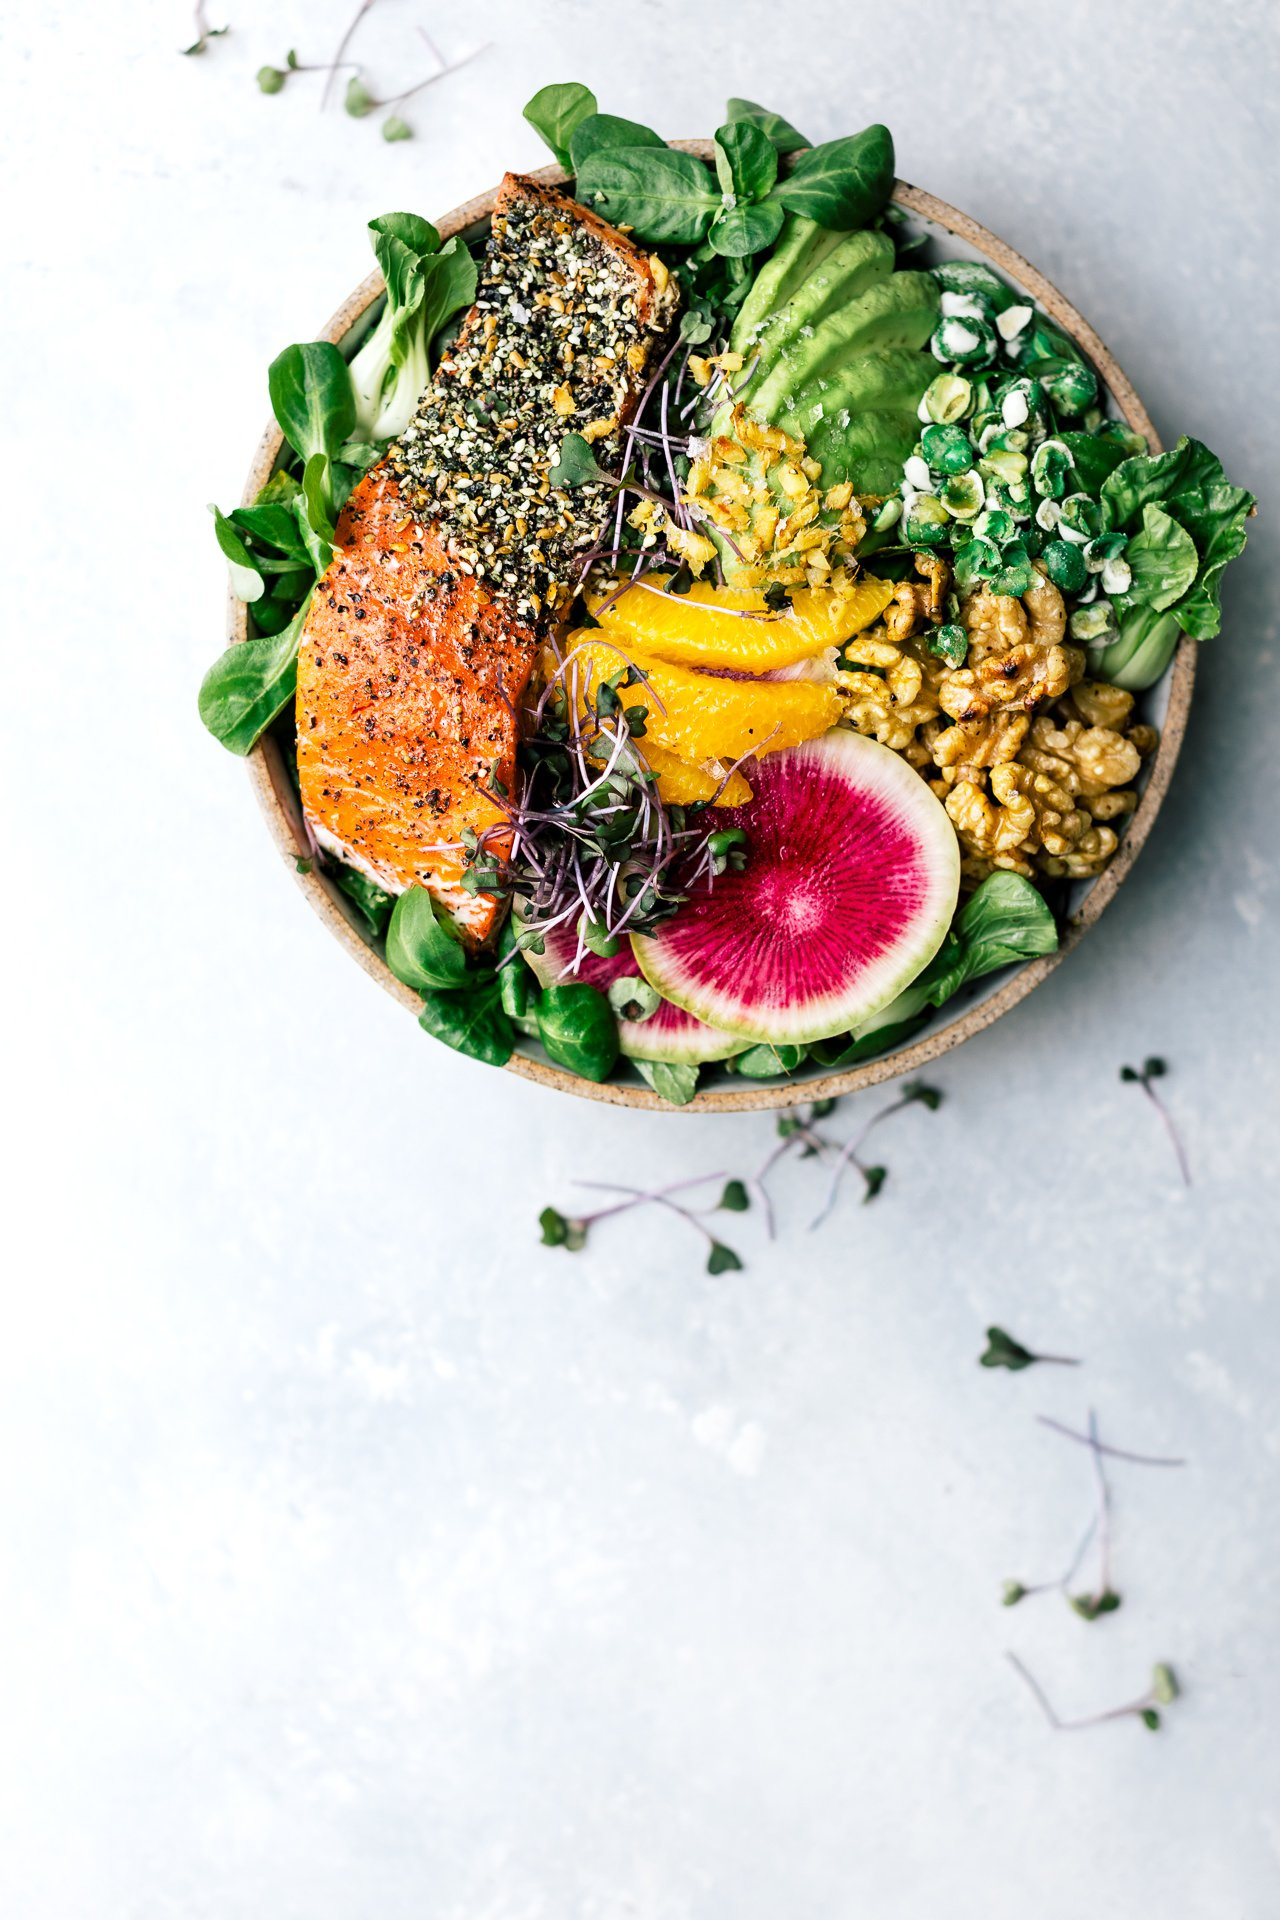 Superfood Salad | An HonestlyYUM + HonestlyFIT Collaboration